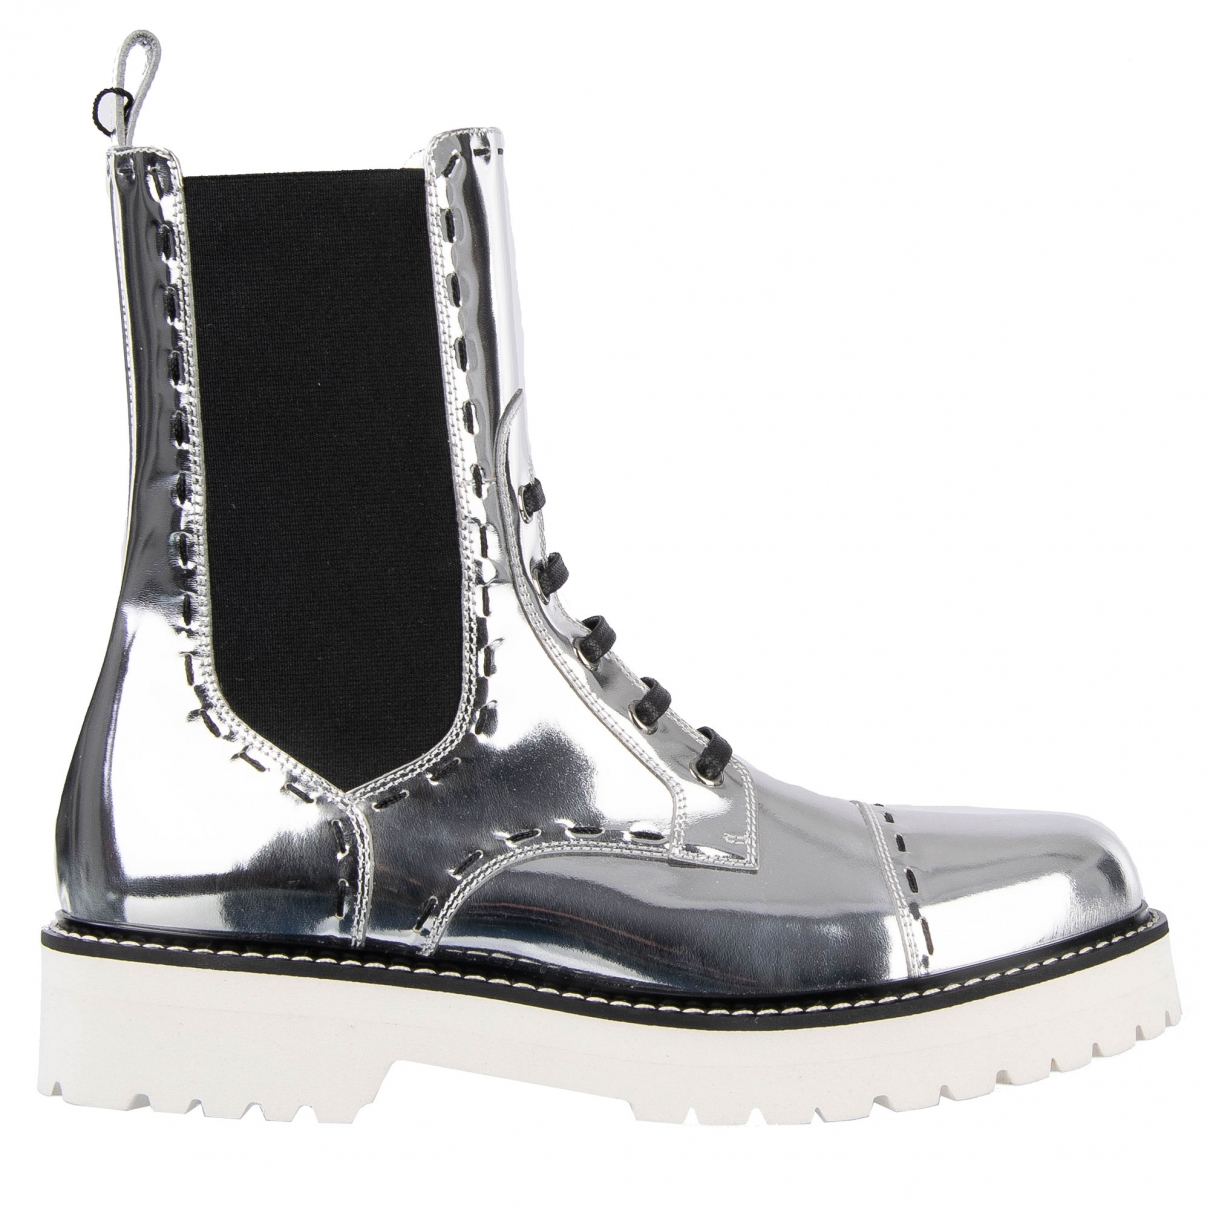 Dolce & Gabbana \N Silver Leather Boots for Women 39 EU